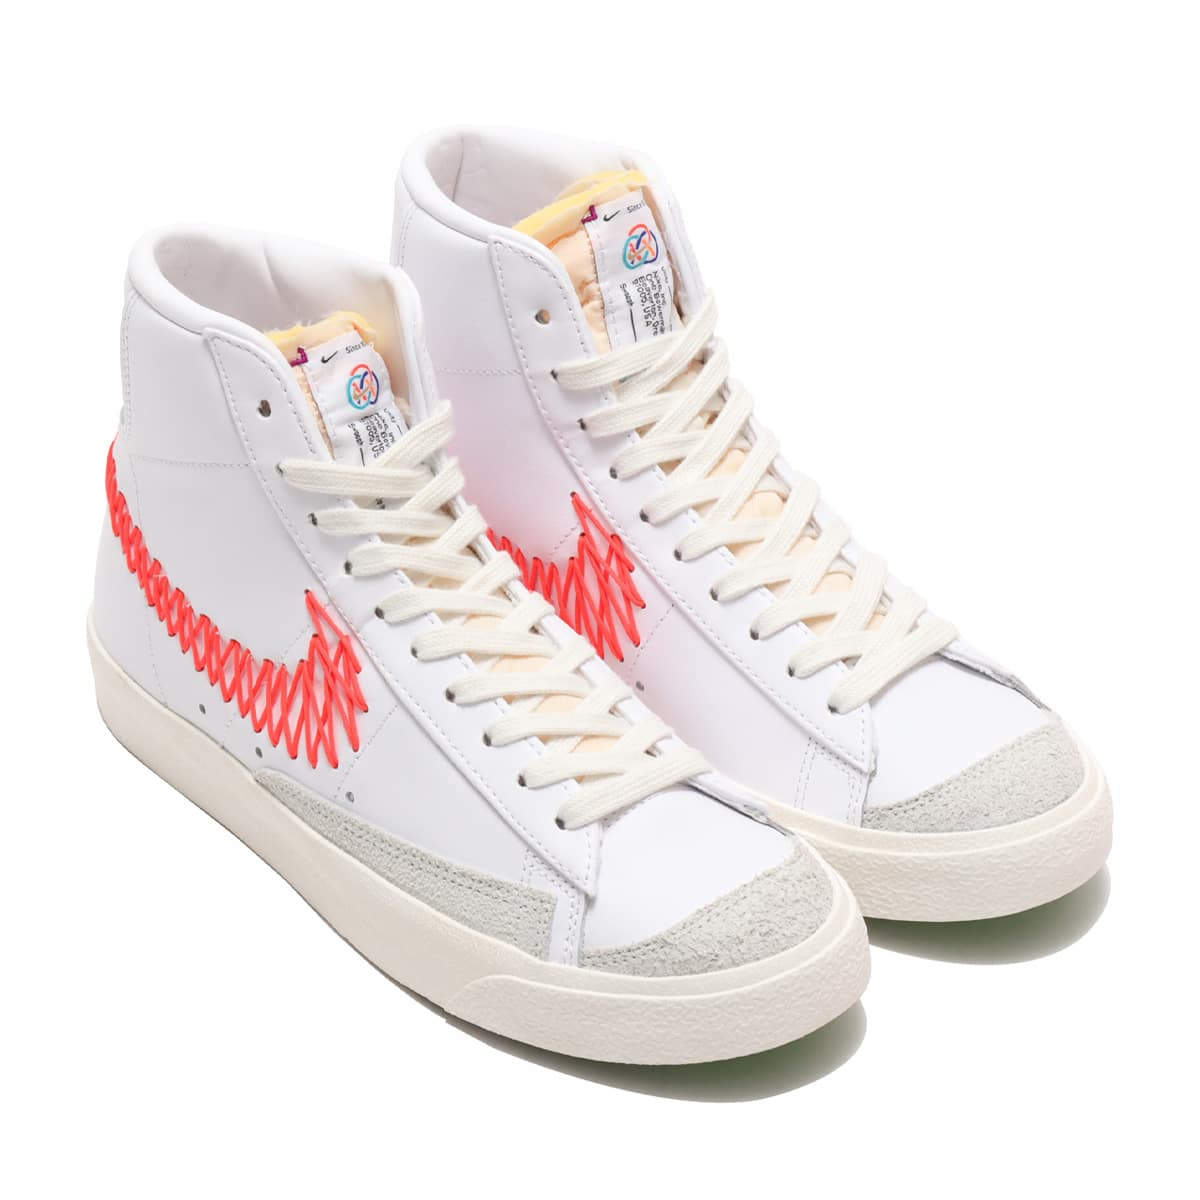 NIKE BLAZER MID '77 VNTG WHITE/BRIGHT CRIMSON-SAIL-SUMMIT WHITE 21SP-I_photo_large